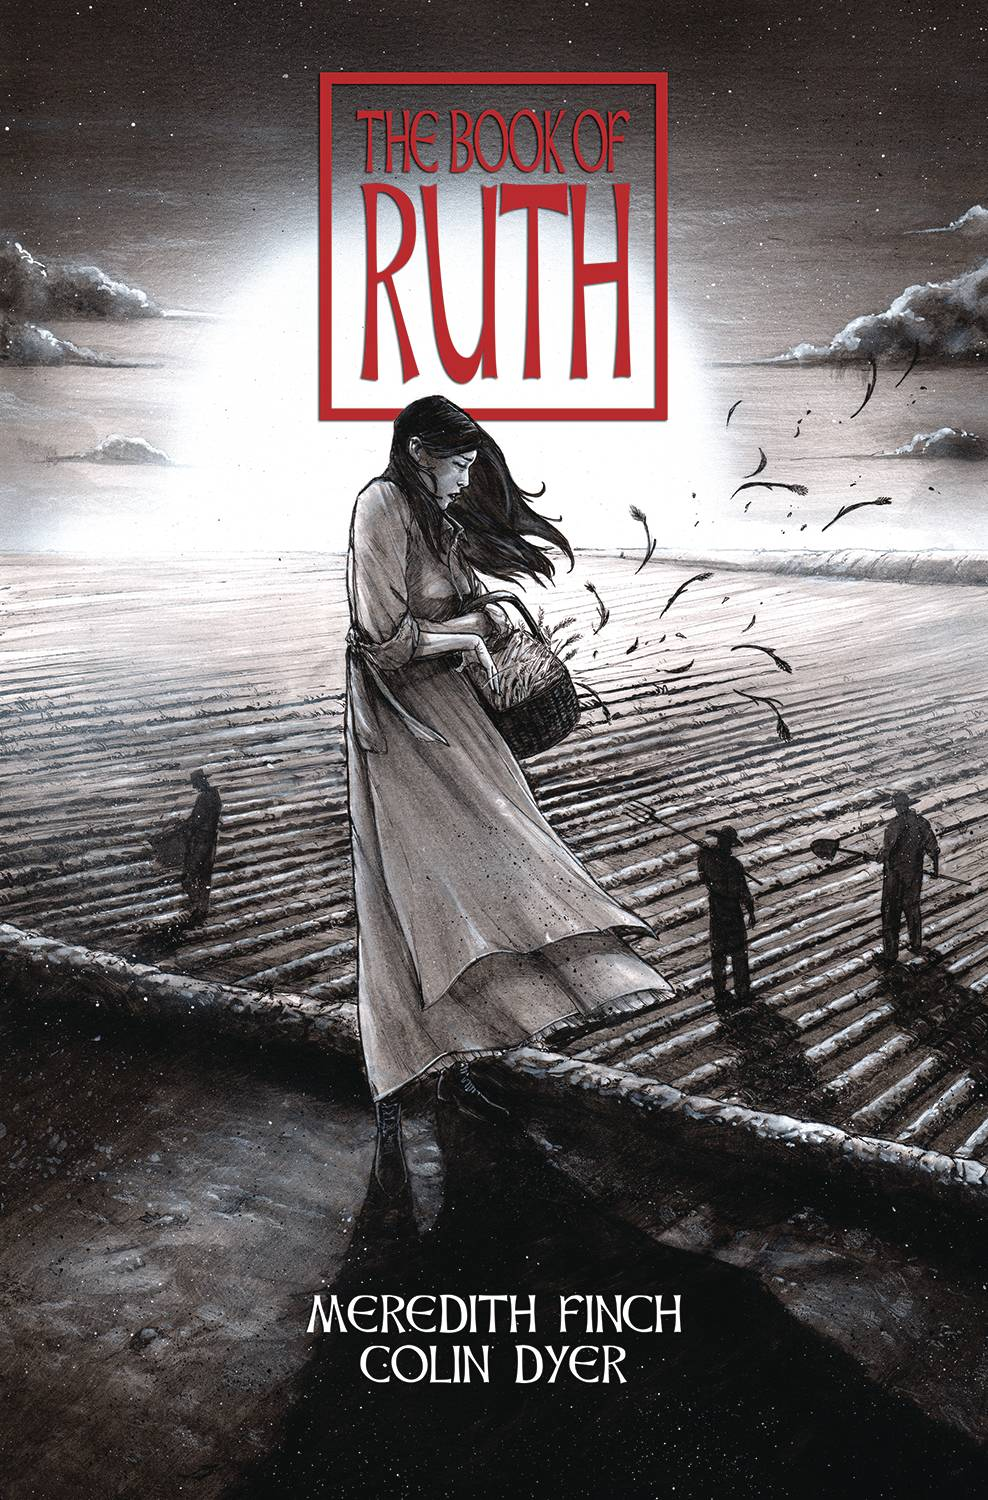 BOOK OF RUTH GN